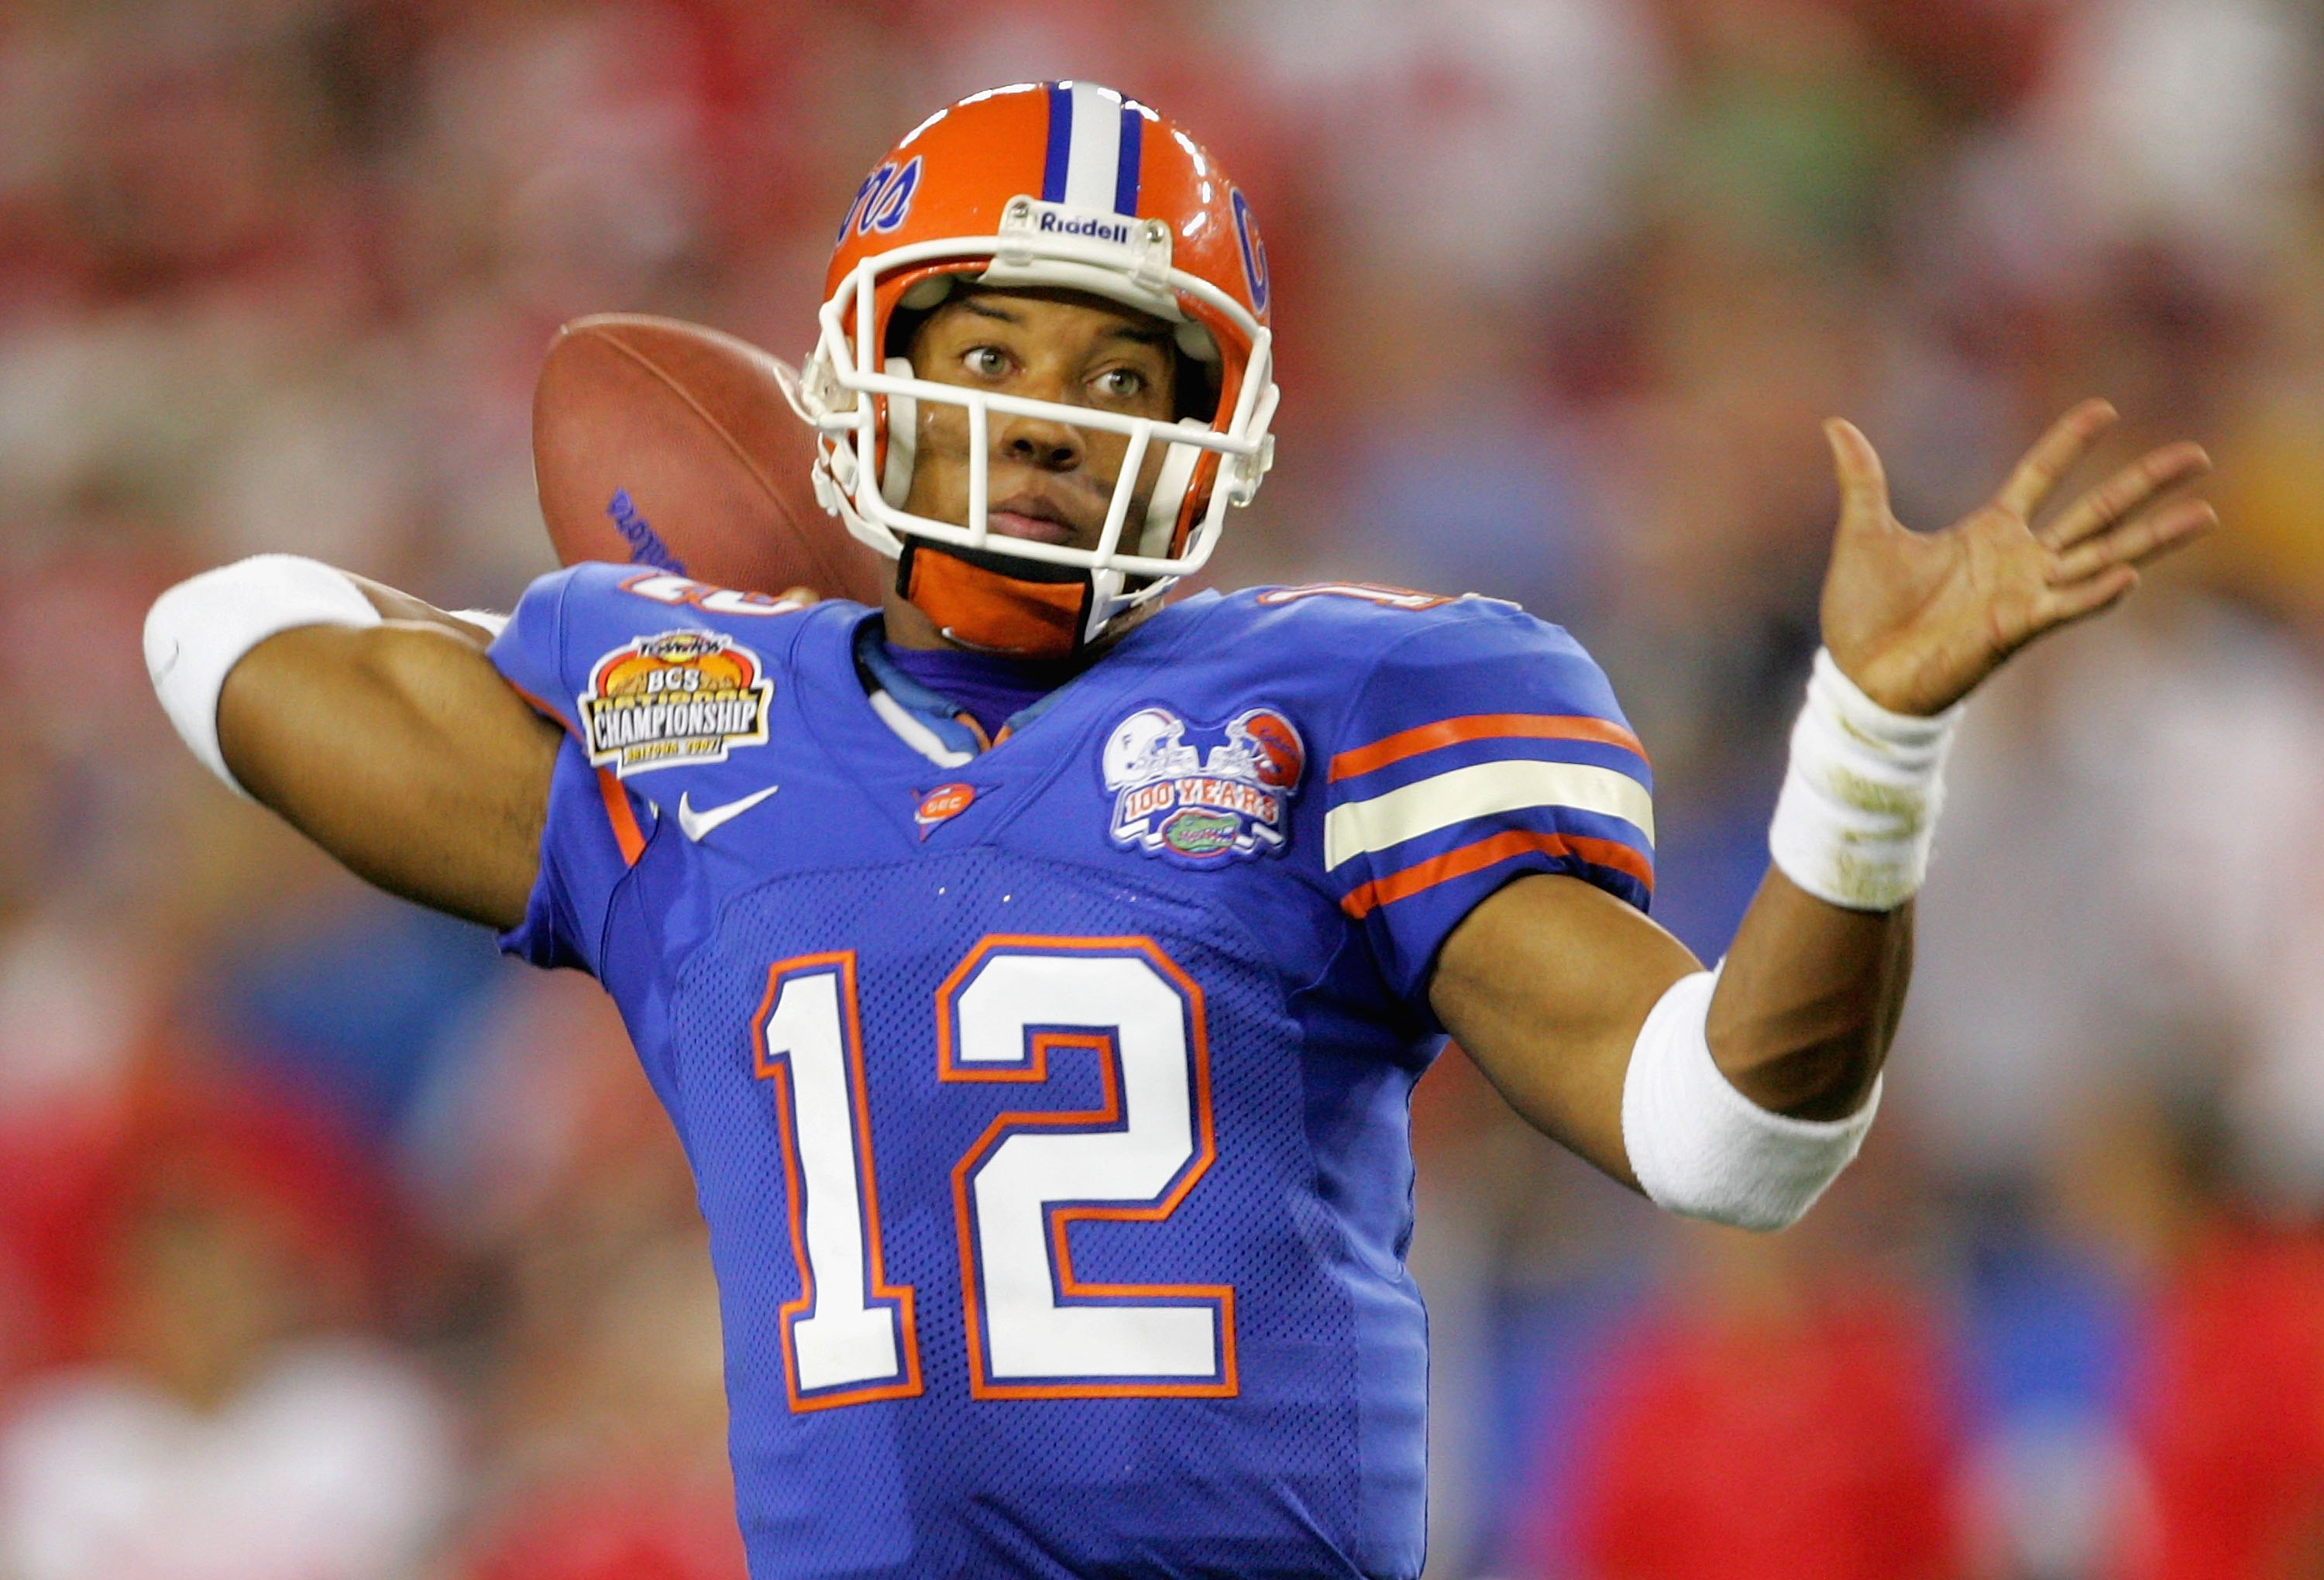 GLENDALE, AZ - JANUARY 08:  Quarterback Chris Leak #12 of the Florida Gators looks to pas the ball against the Ohio State Buckeyes during the second quarter of the 2007 Tostitos BCS National Championship Game at the University of Phoenix Stadium on Januar